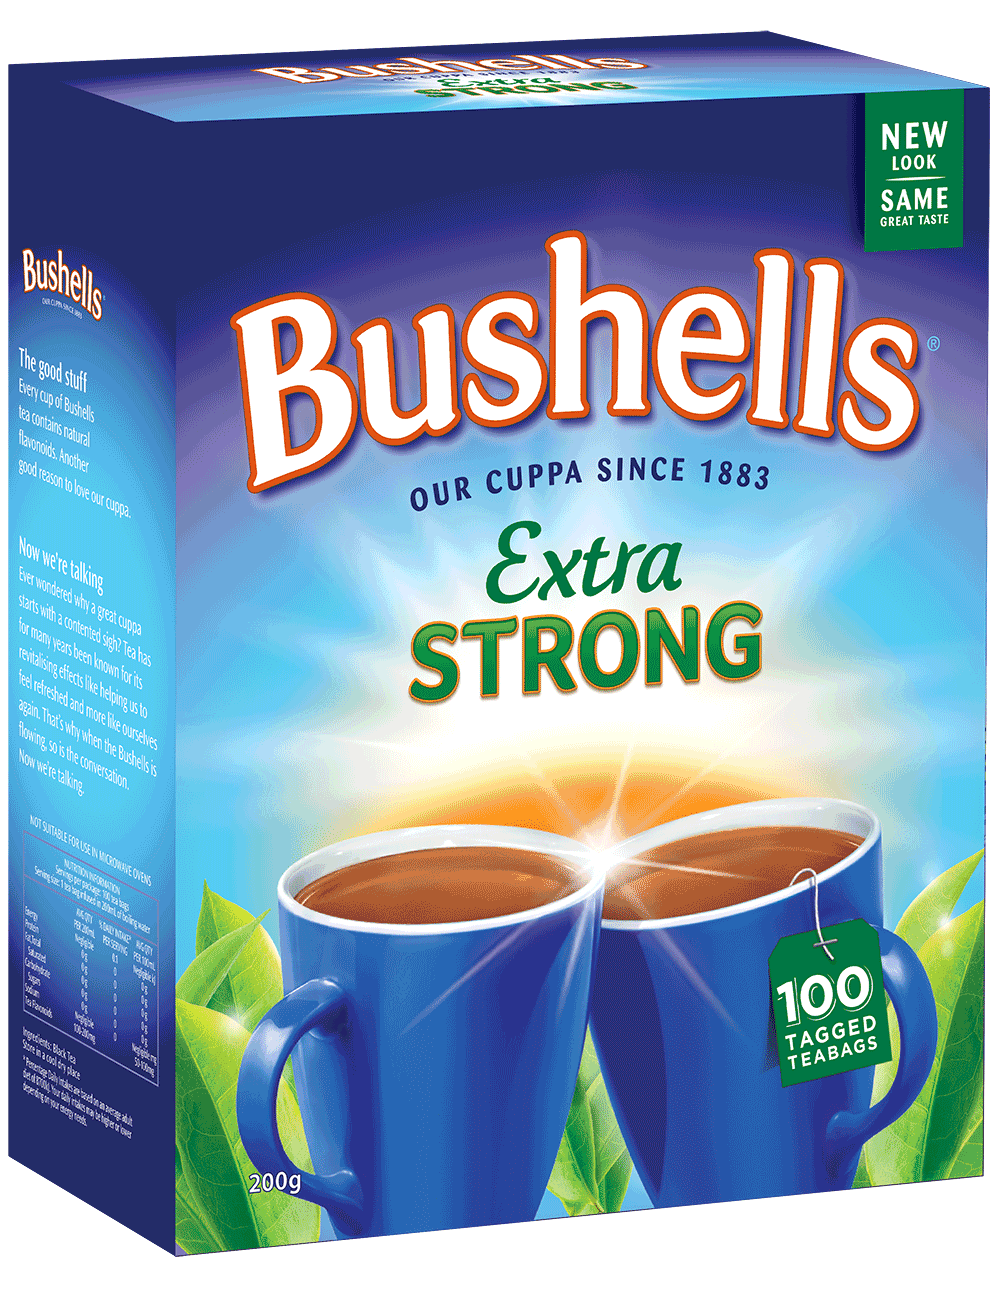 Bushells Extra Strong Tea - 100 tagged teabags of an even richer, warmer, fuller flavoured cuppa - a taste of home, created especially for Australian tastes